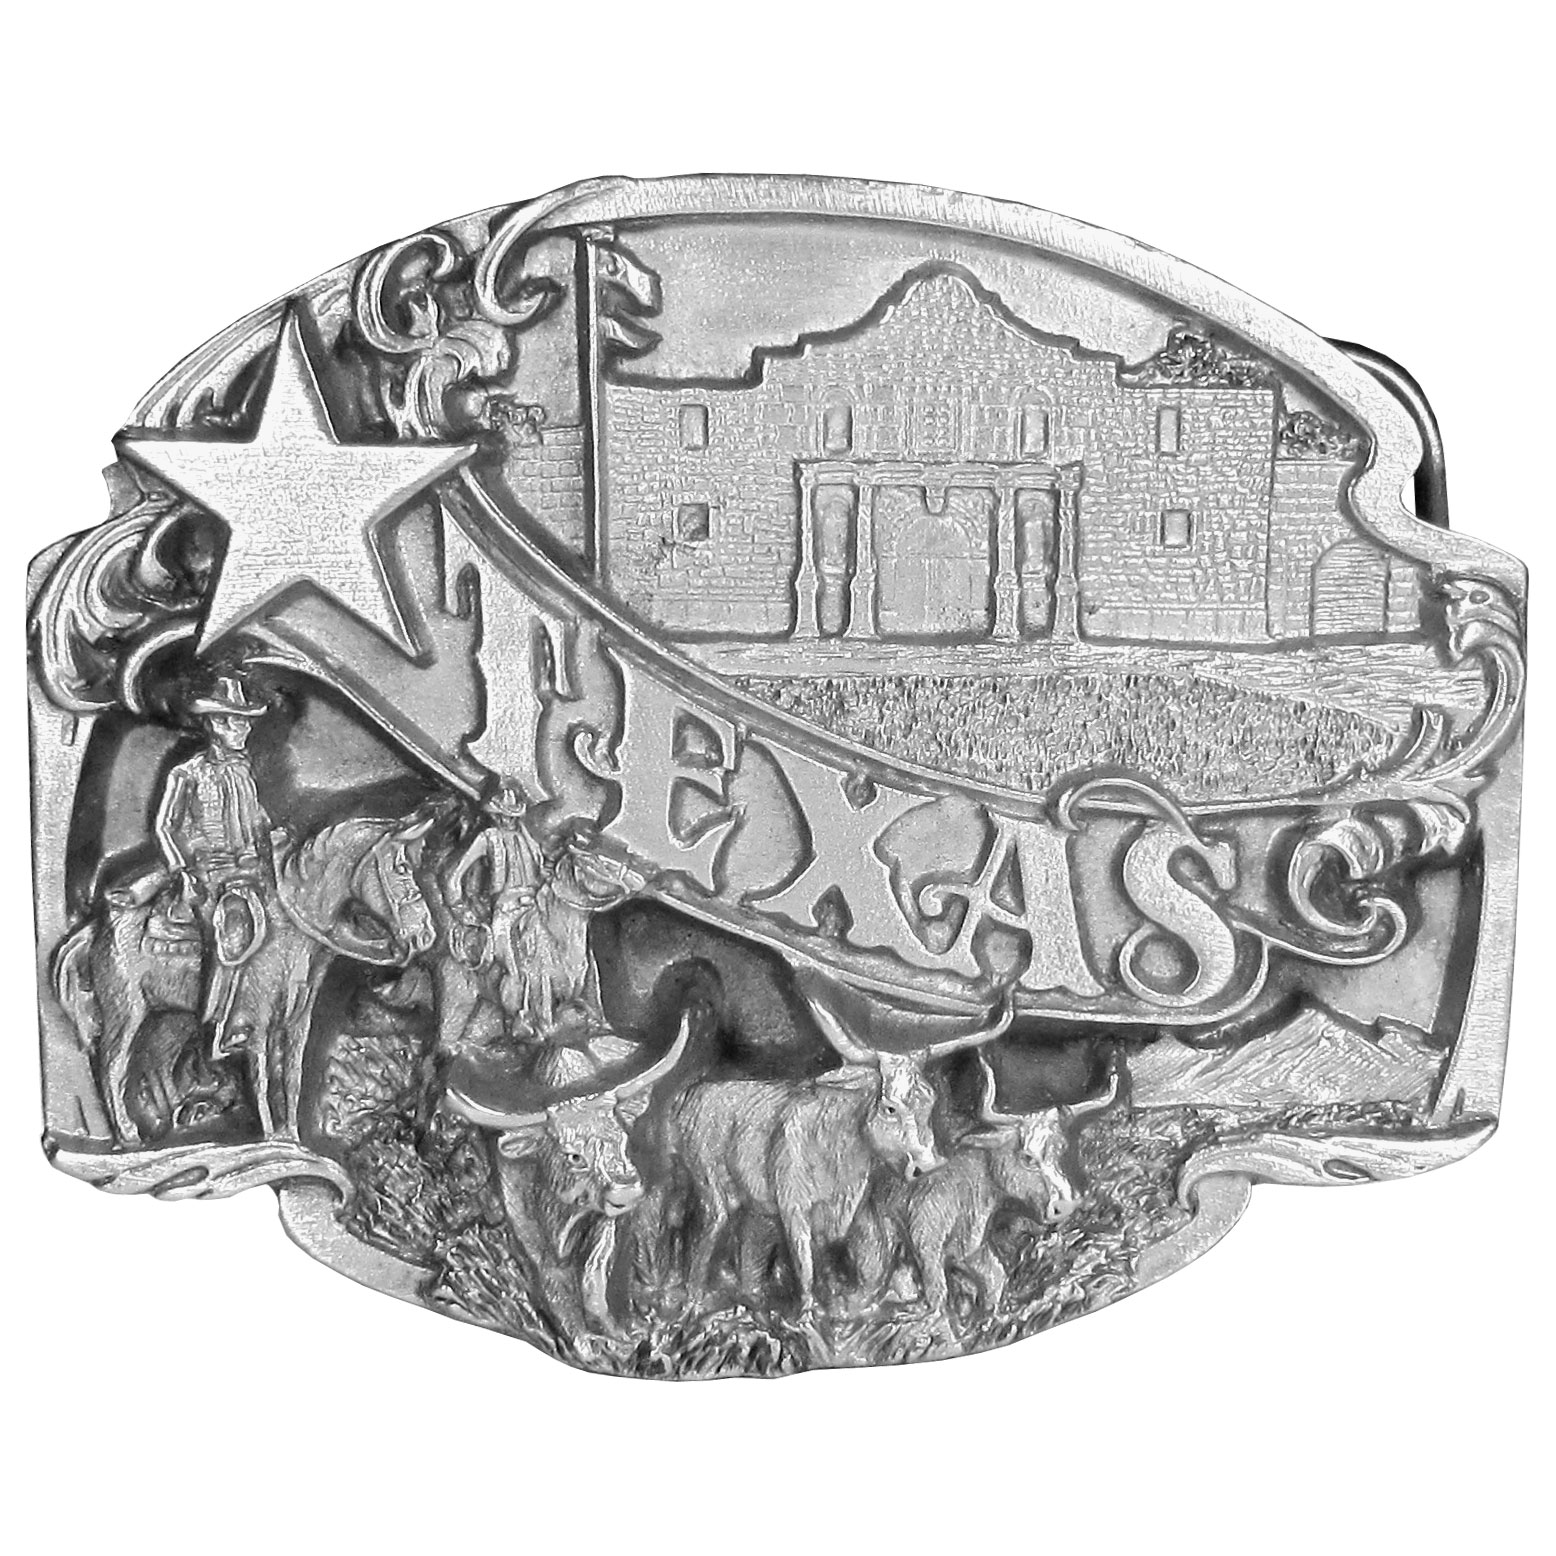 "Texas Antiqued Belt Buckle - ""Texas"" is bolding written in the center of this belt buckle with a star at the front. On the top is the Alamo from San Antonio and on the bottom are two cowboys on horses herding steer. On the back are the words, """"Texas, the Lone Star State, was admitted as a state on Dec. 29, 1845. The state bird is the Mockingbird; the state flower is the Bluebonnet; and the state tree is the Pecan. This exquisitely carved buckle is made of fully cast metal with a standard bale that fits up to 2"""" belts. Siskiyou's unique buckle designs often become collectors items and are unequaled with the best craftsmanship."""